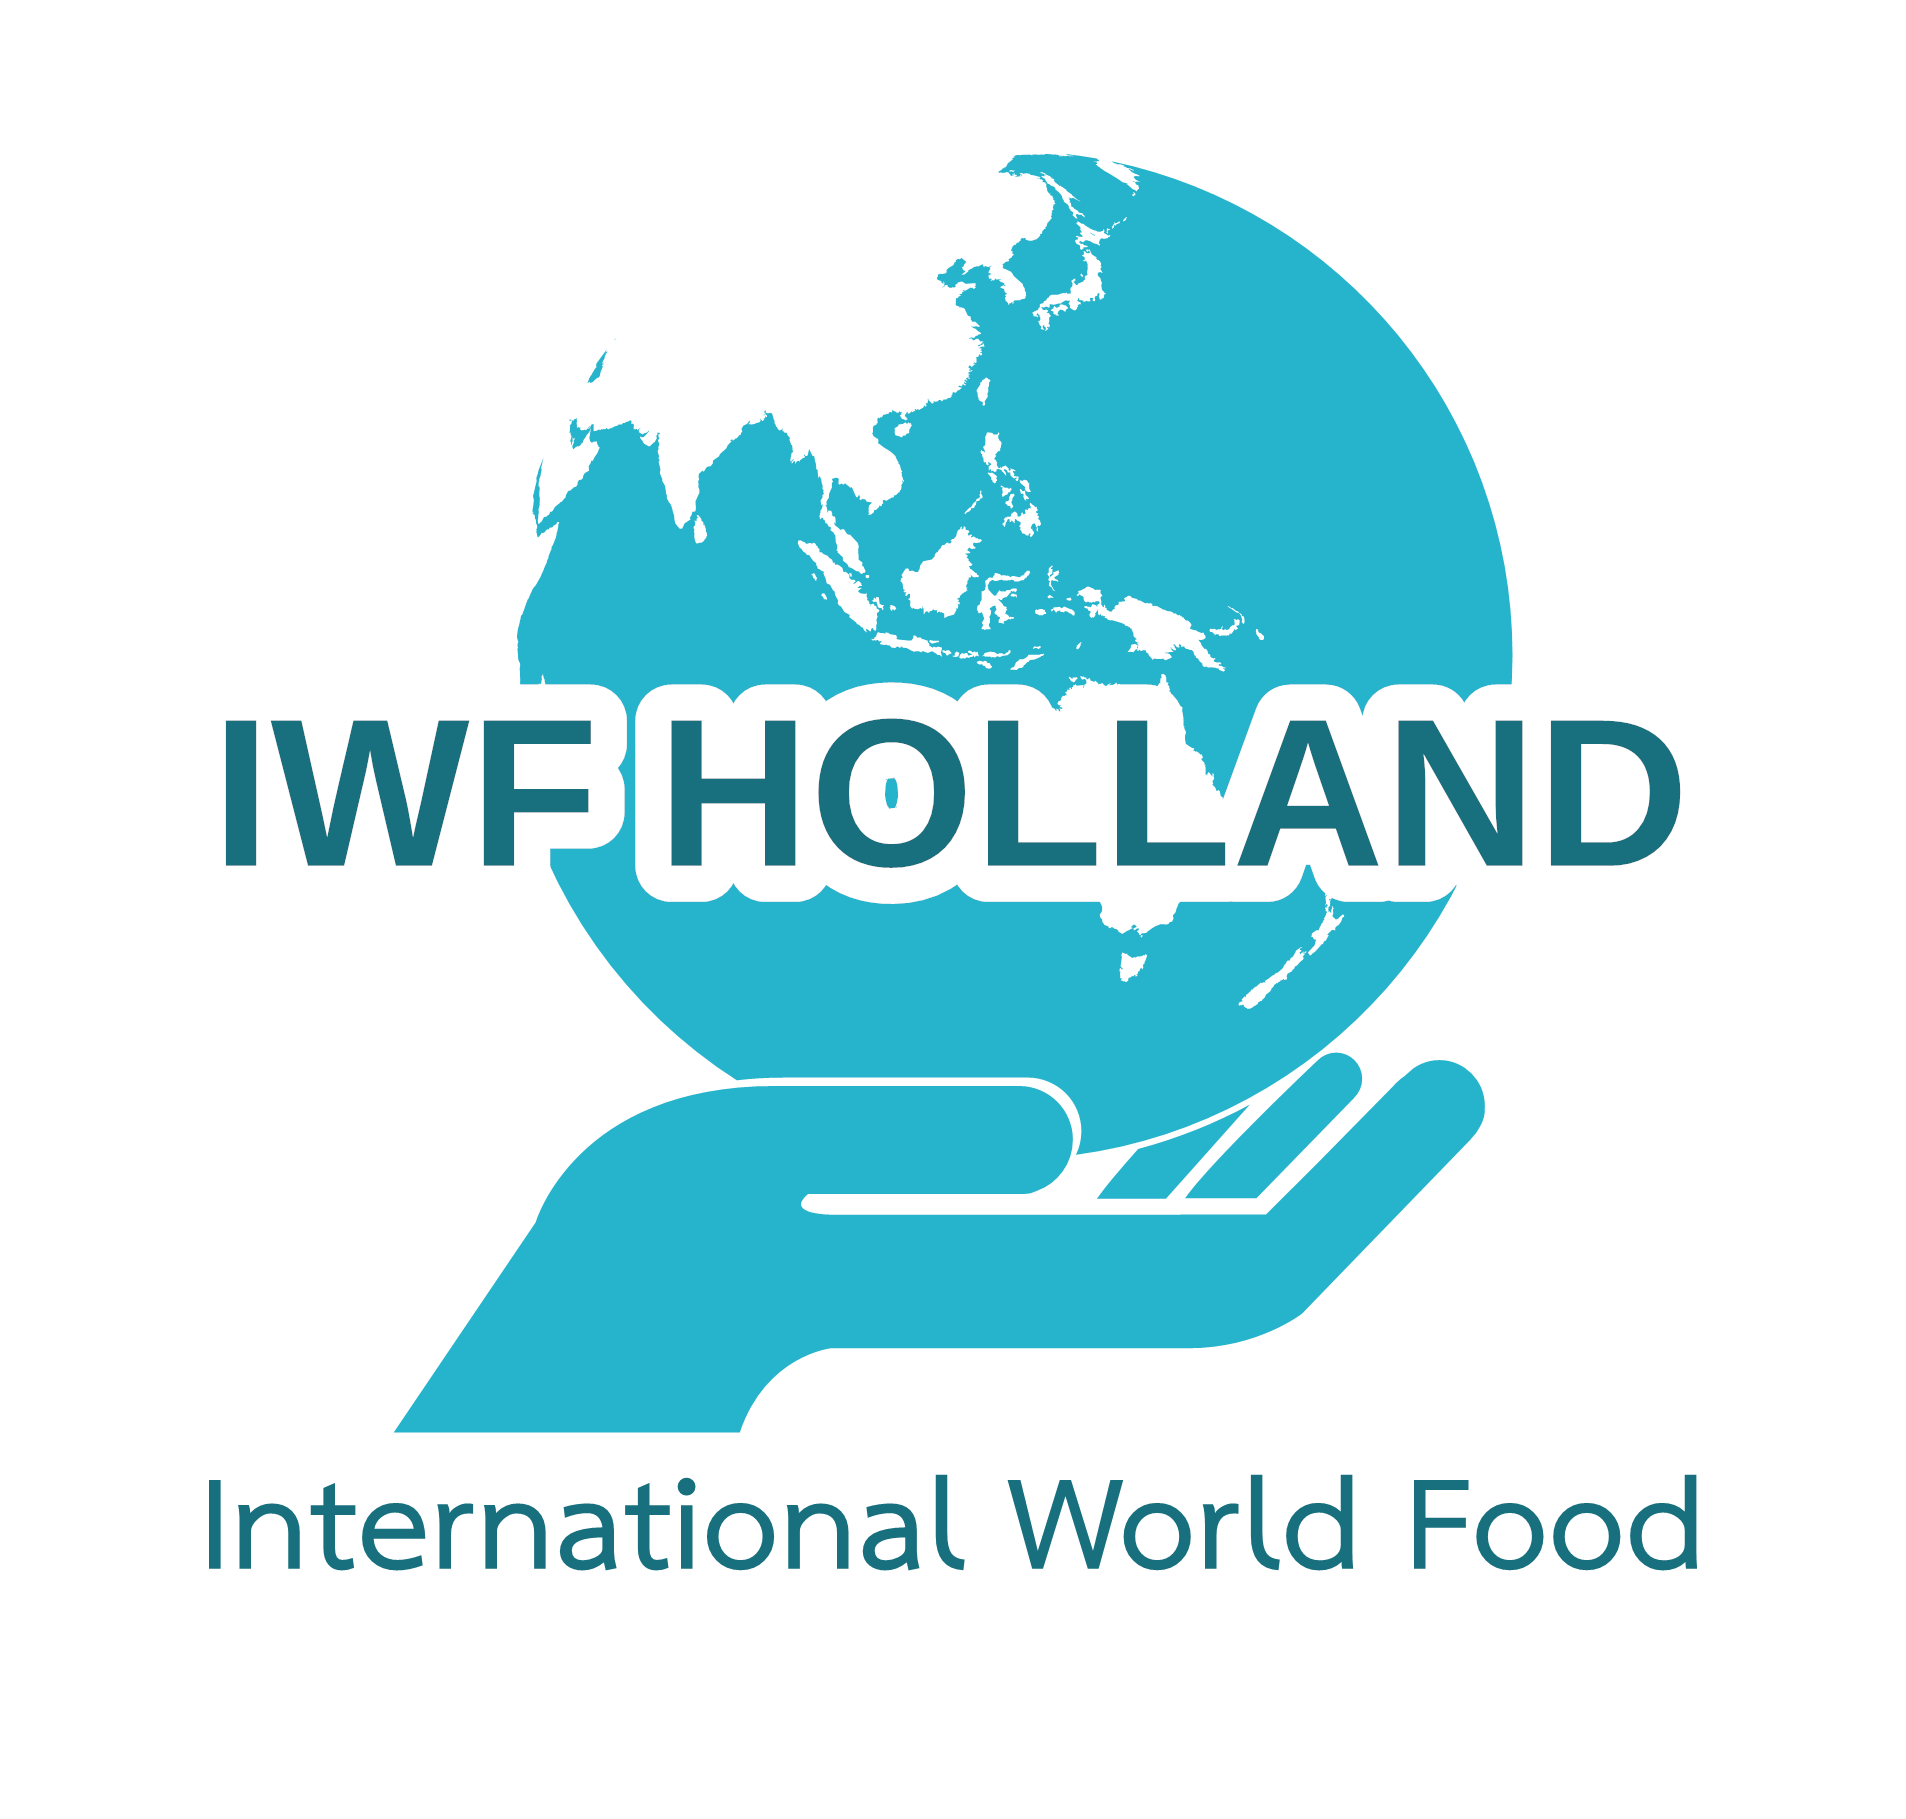 IWF Holland